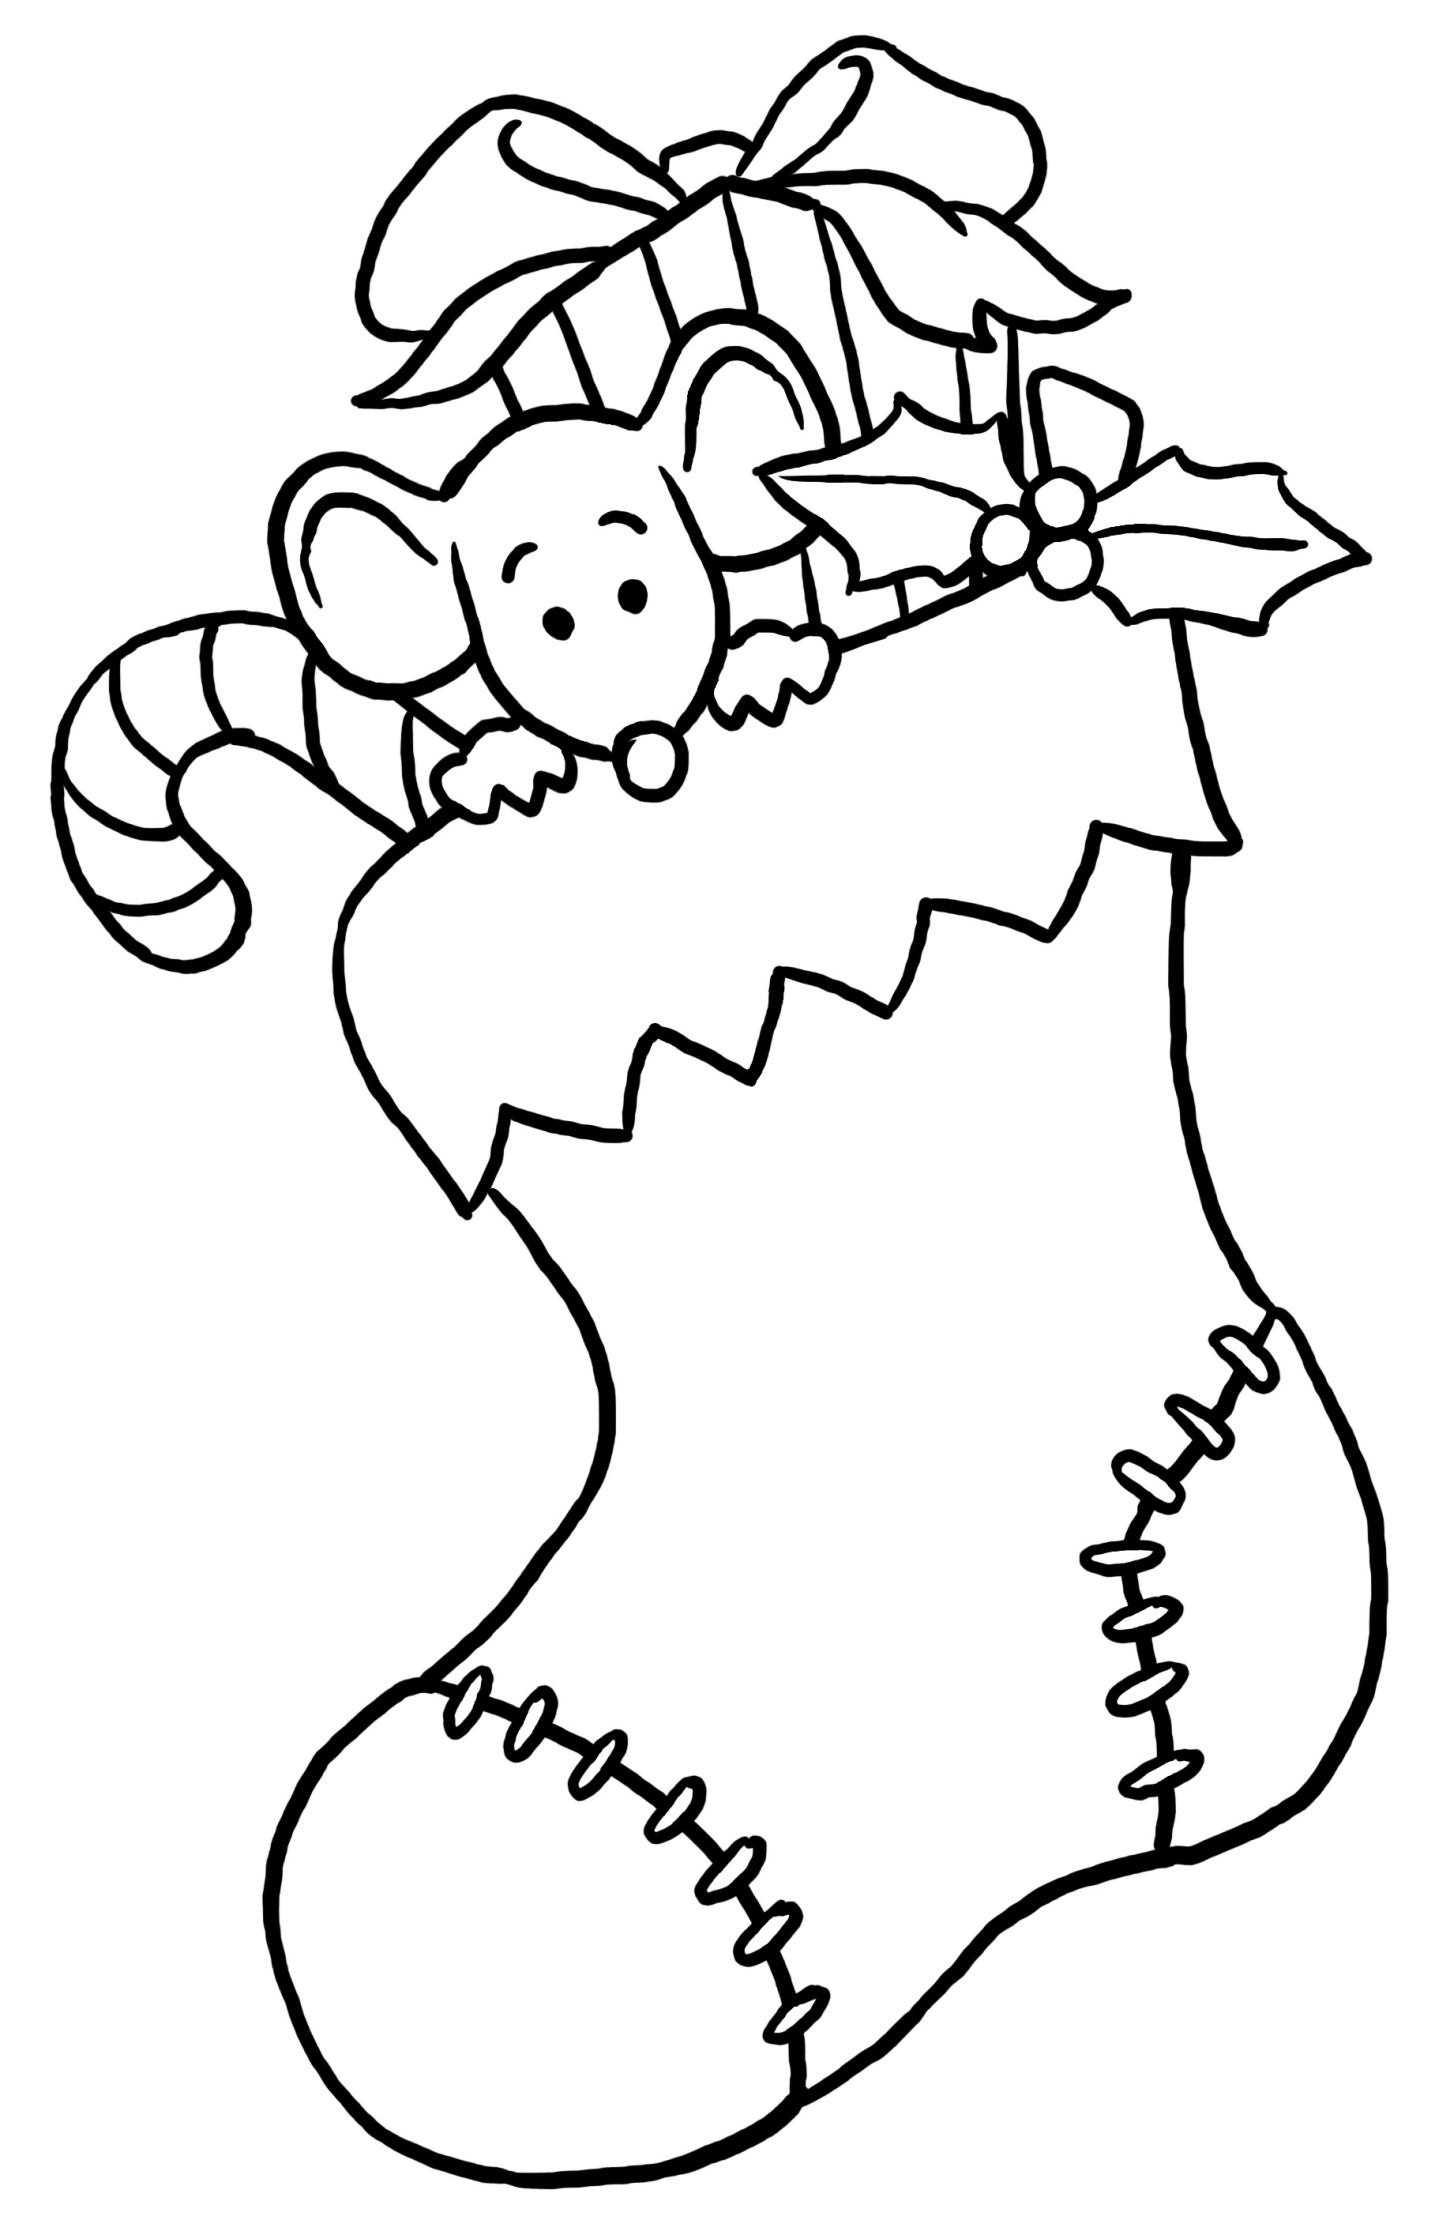 Christmas stocking clipart black and white 3 » Clipart Station.